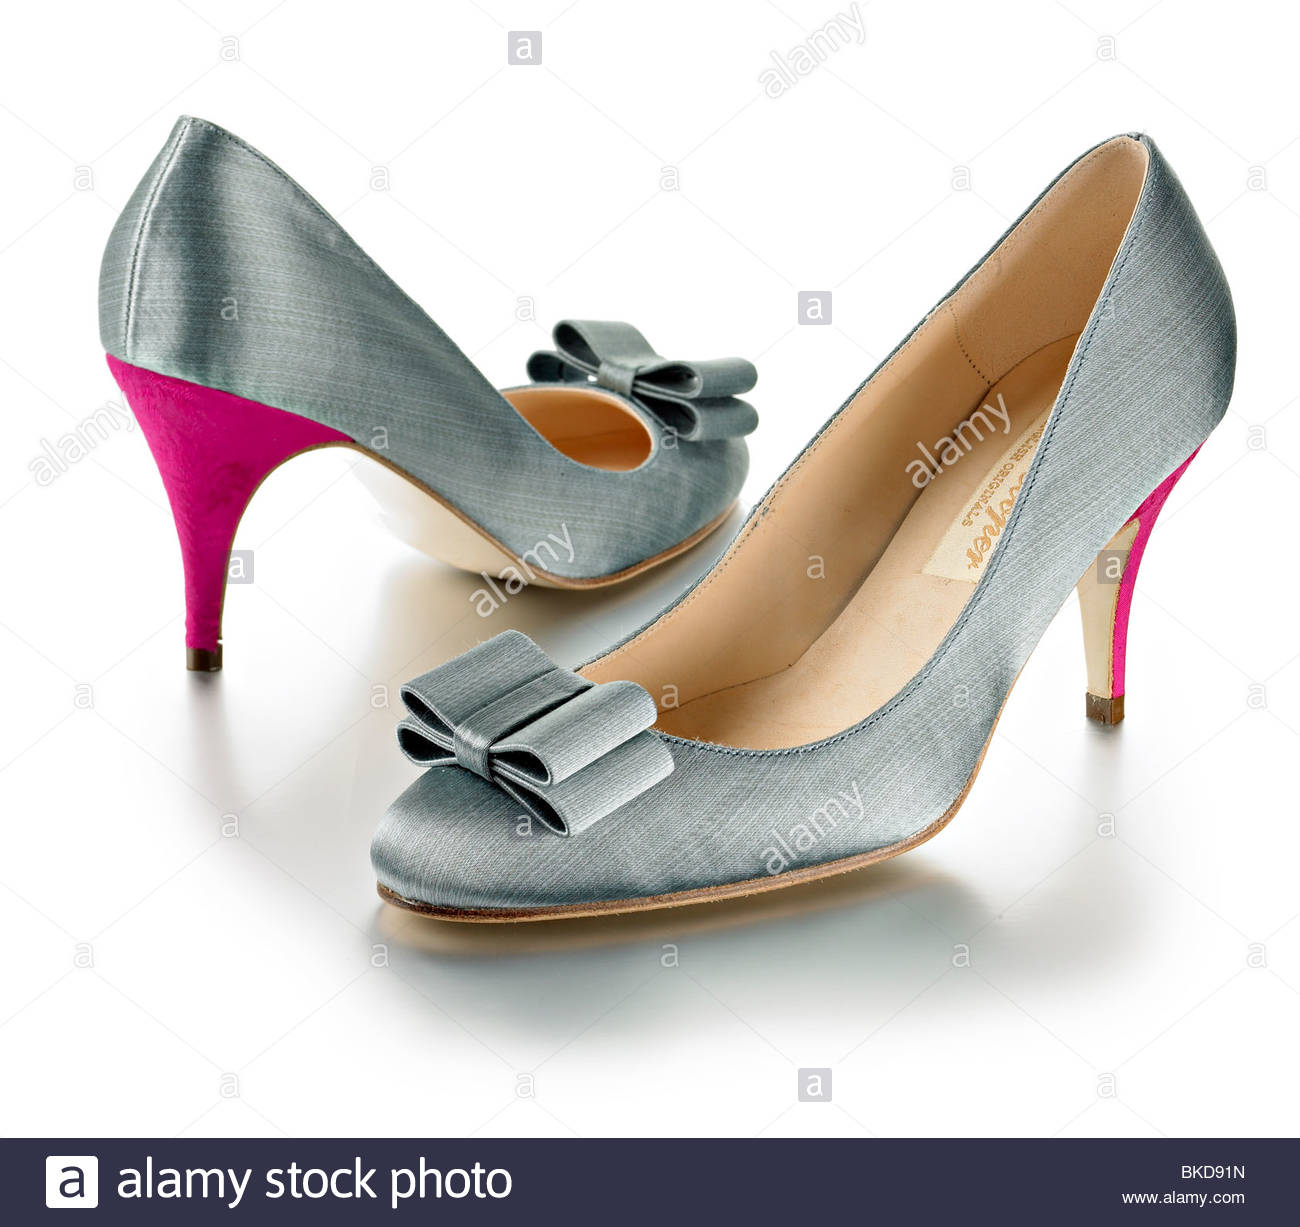 classic ladies high heeled shoes - Stock Image